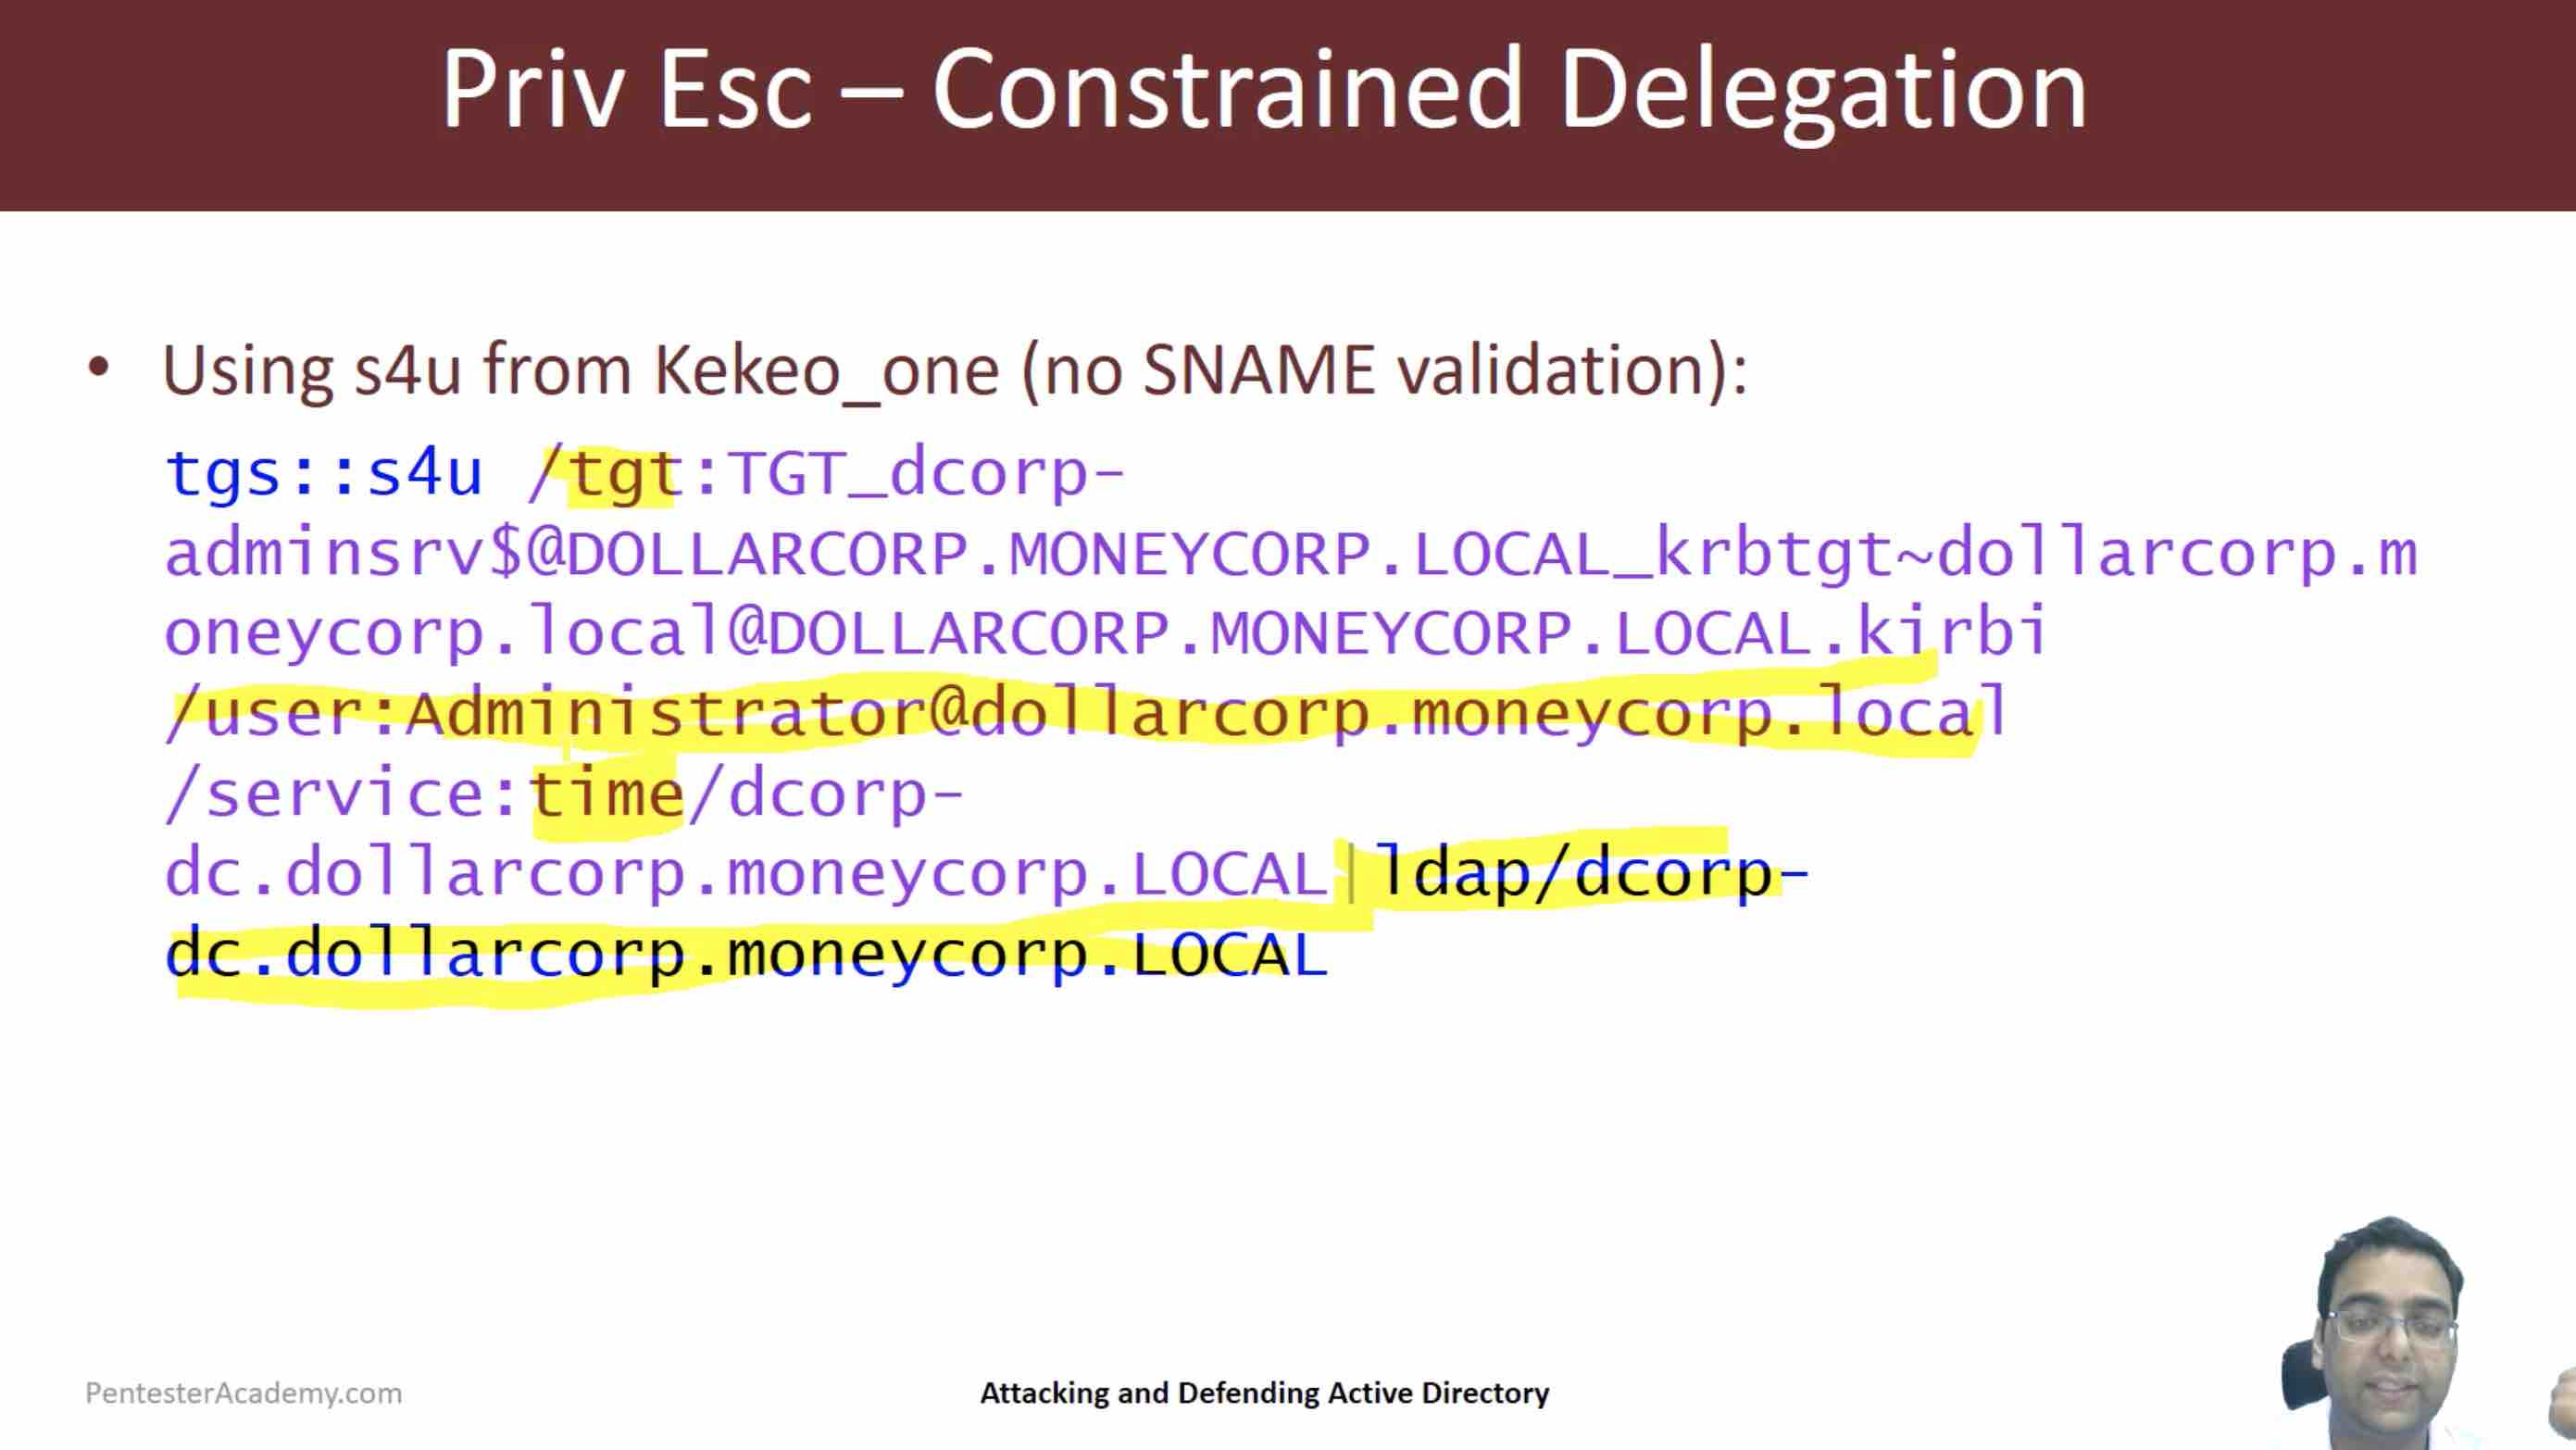 Domain Privilege Escalation: Constrained Delegation